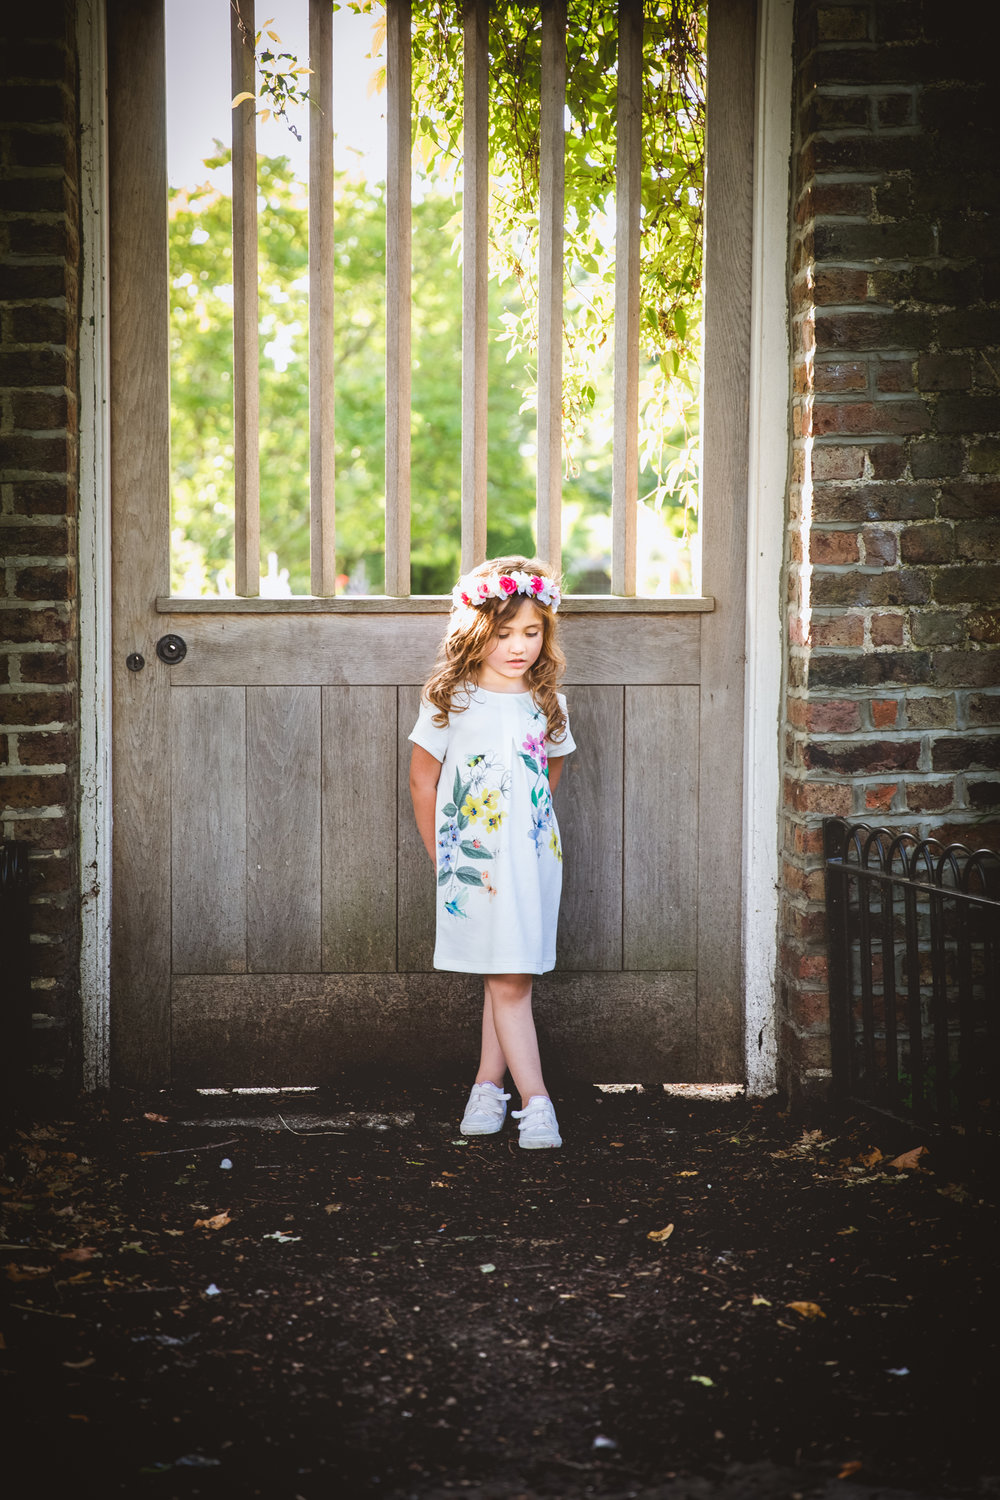 Children photography at Brockwell Park, Herne Hill, London